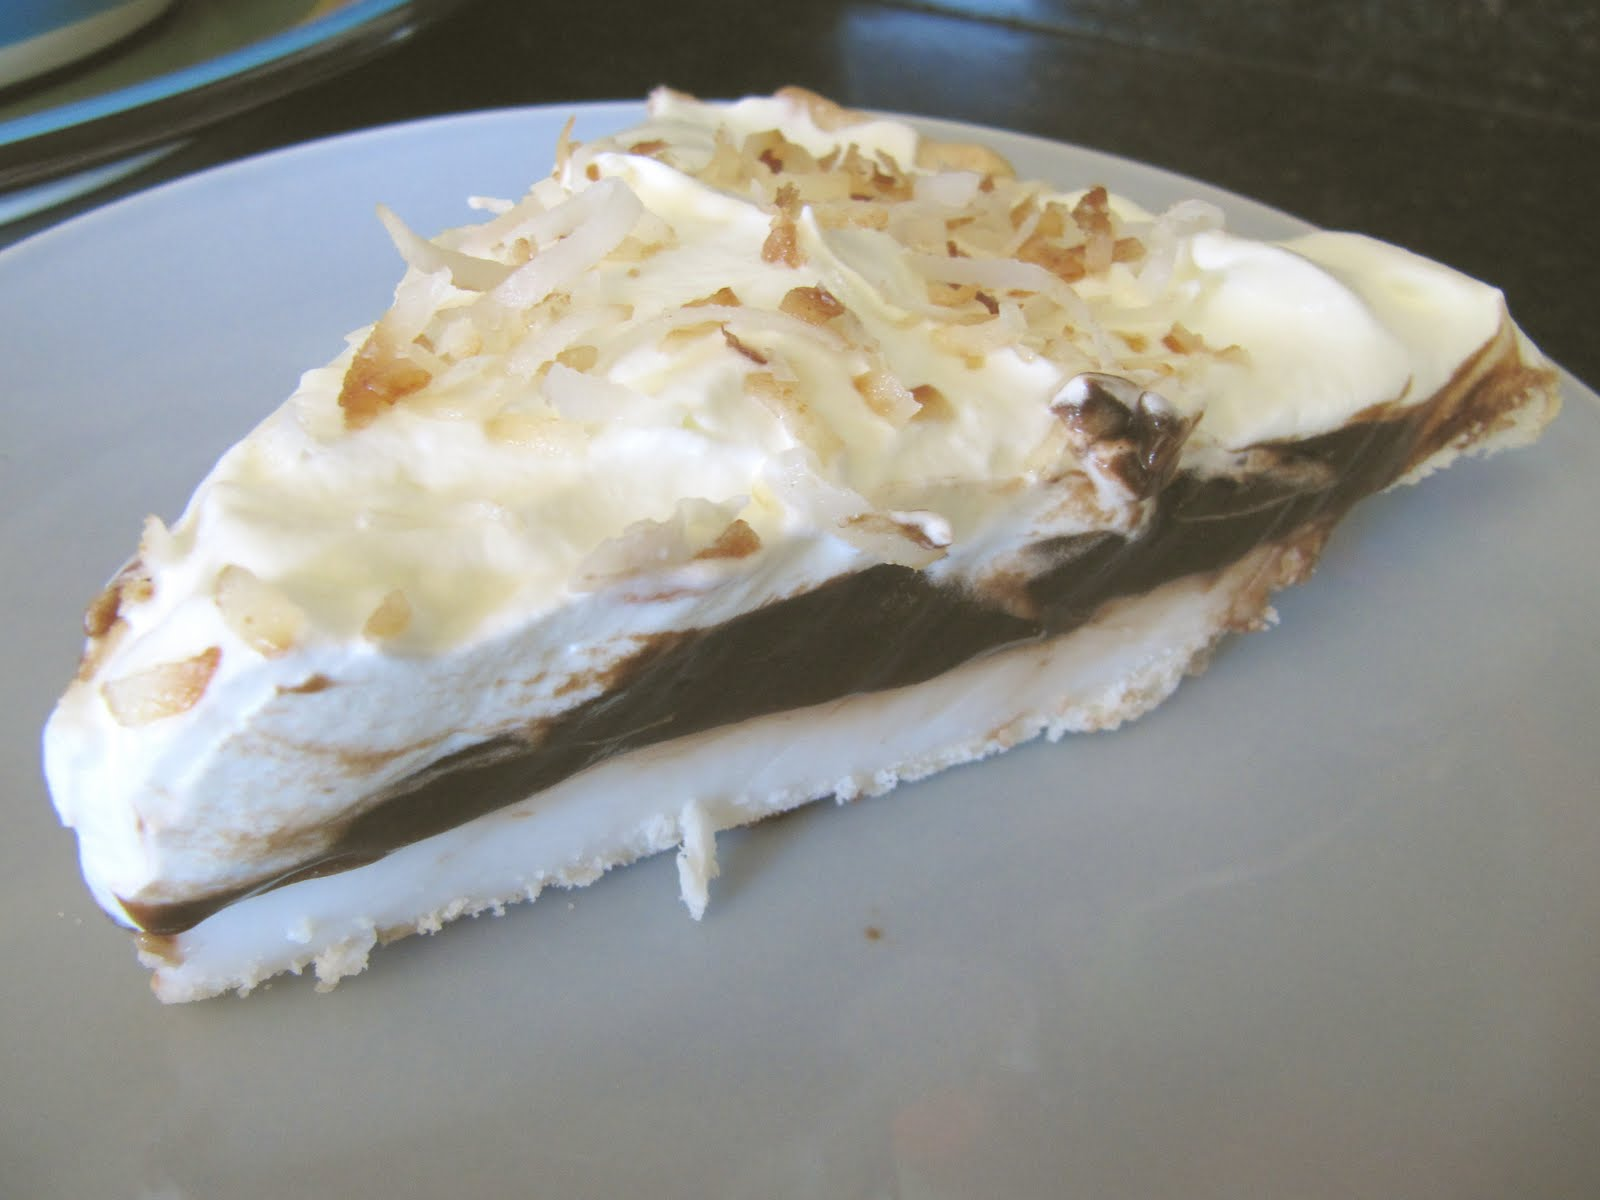 This Is Beige: Chocolate Coconut Haupia Pie Inspired by Ted's Bakery